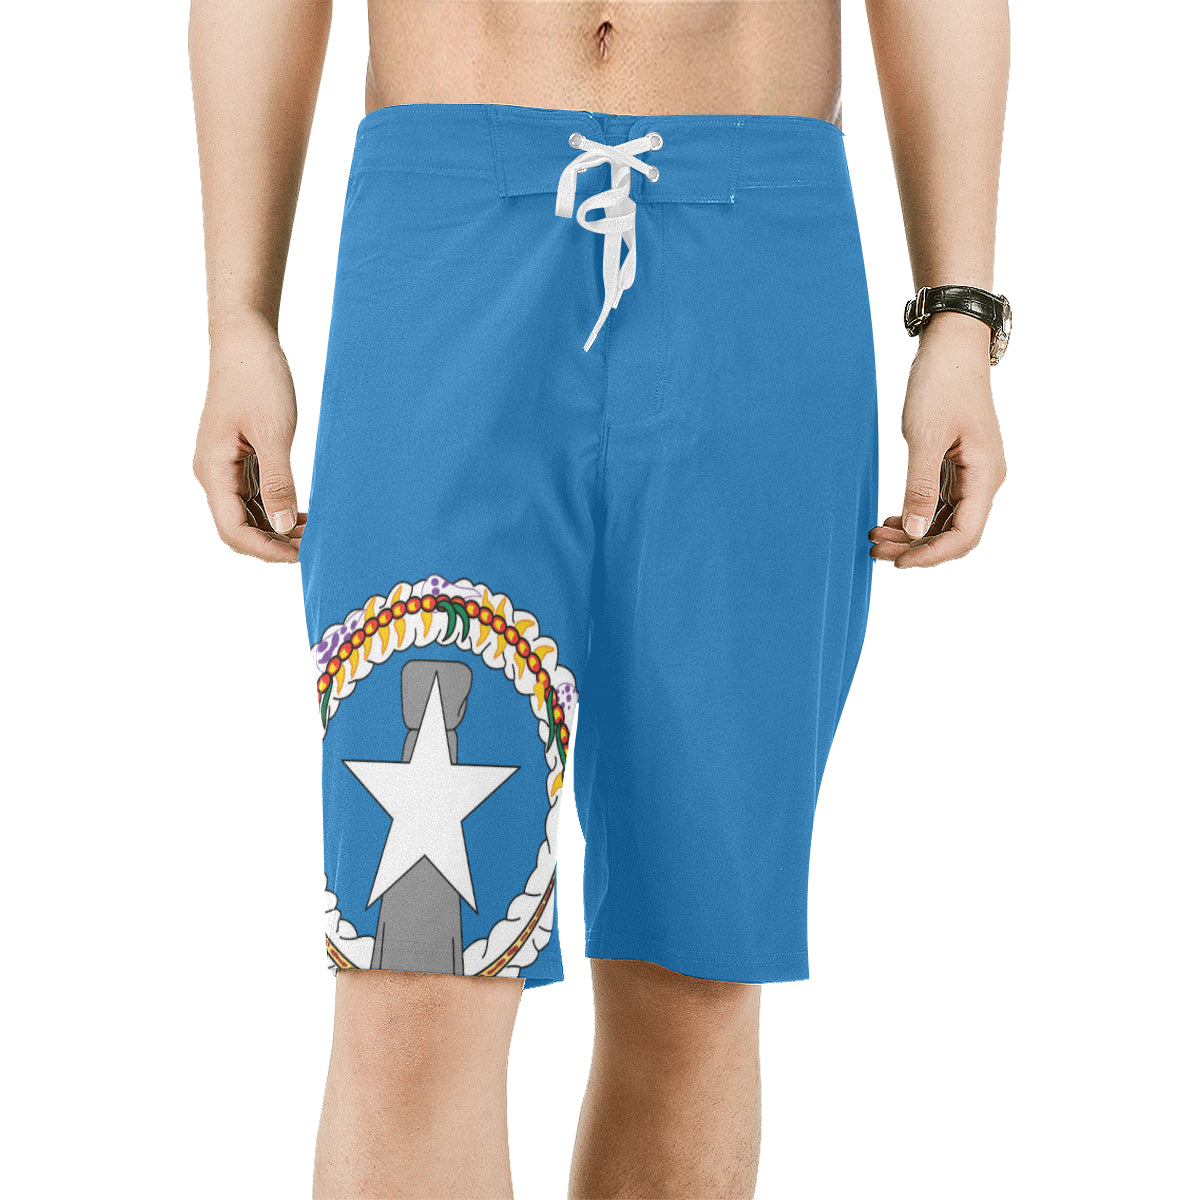 CNMI Flag Saipan Men's All Over Print Board Shorts